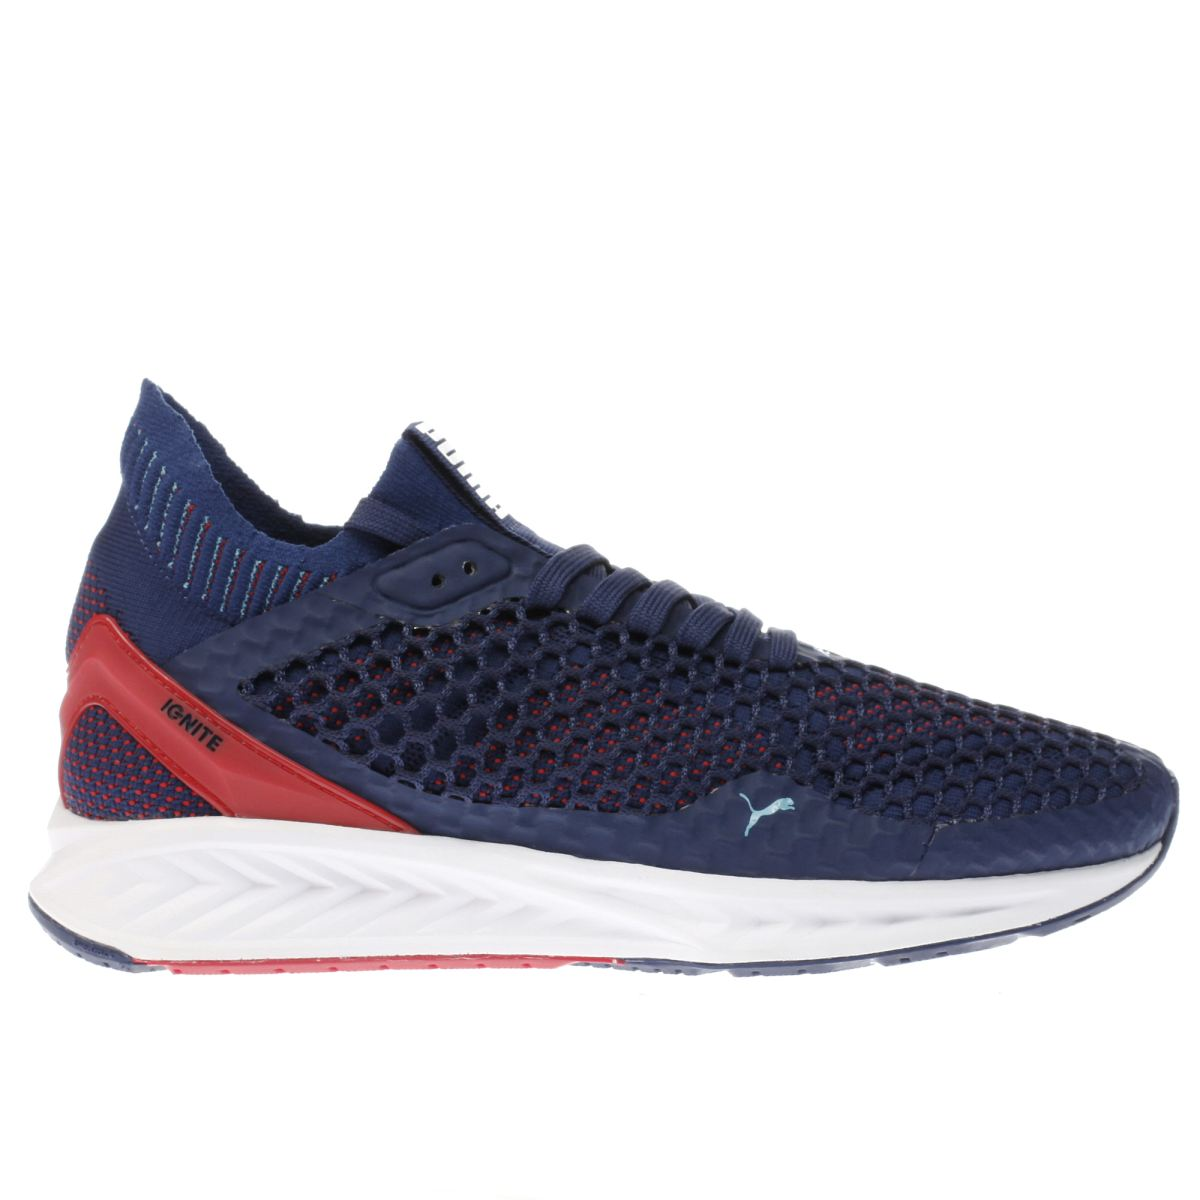 puma navy & red ignite netfit trainers